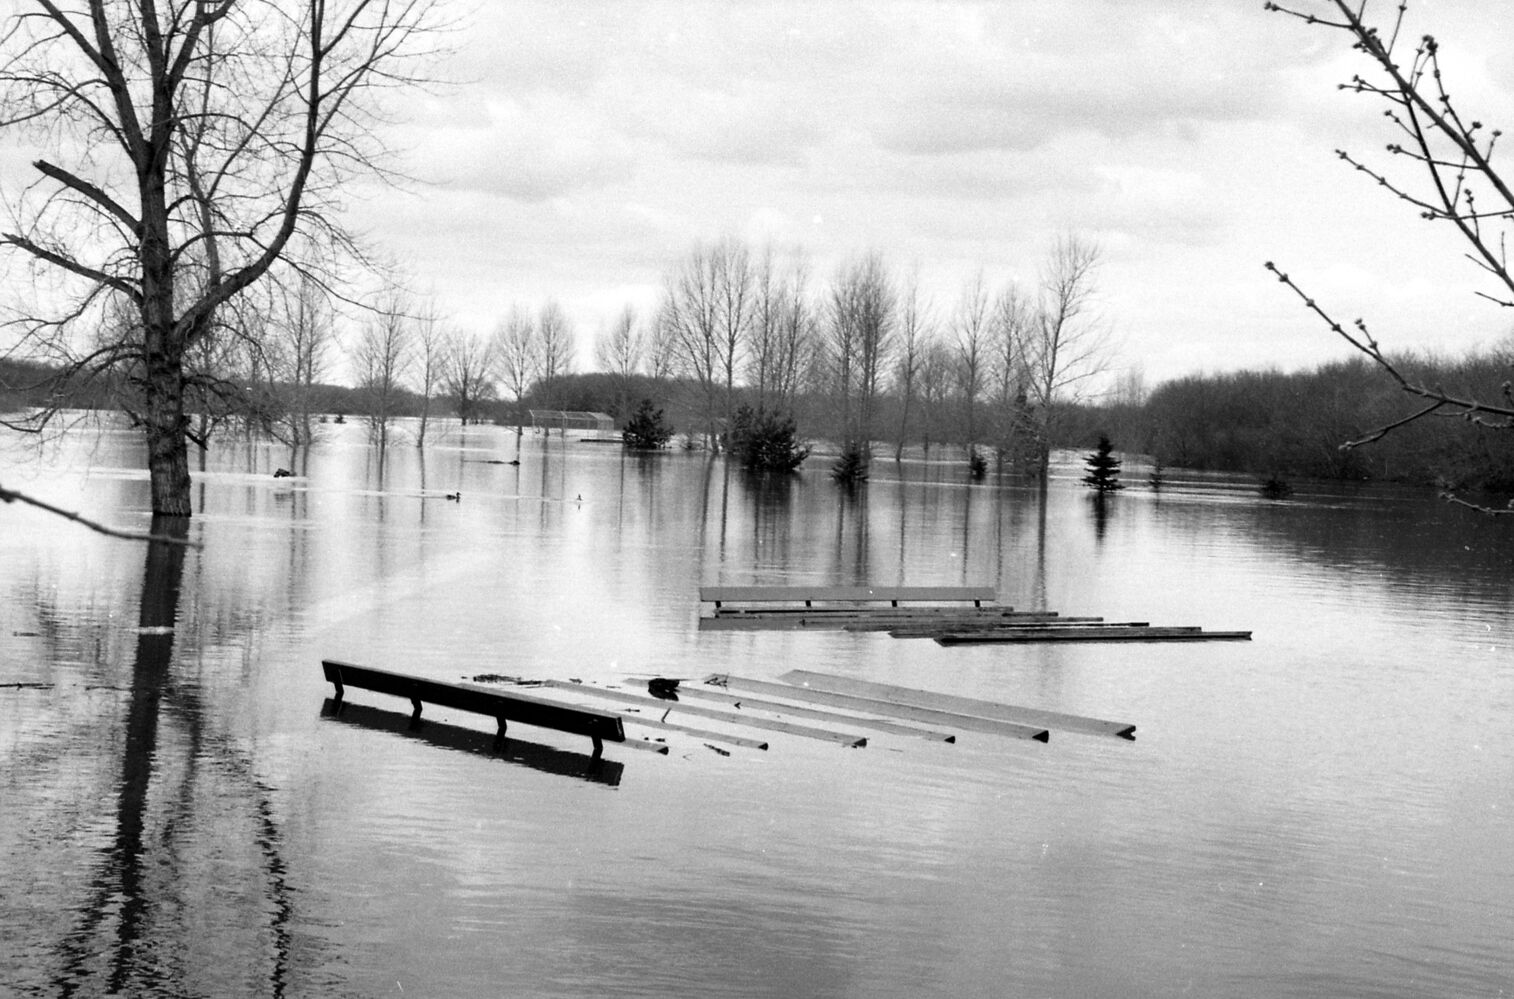 Assiniboine River floodwaters swamp grandstands during the 1995 flooding. Location is probably the Participaction Park, now Pooch Park. (Dirk Aberson / Brandon Sun archives, April 24, 1995)